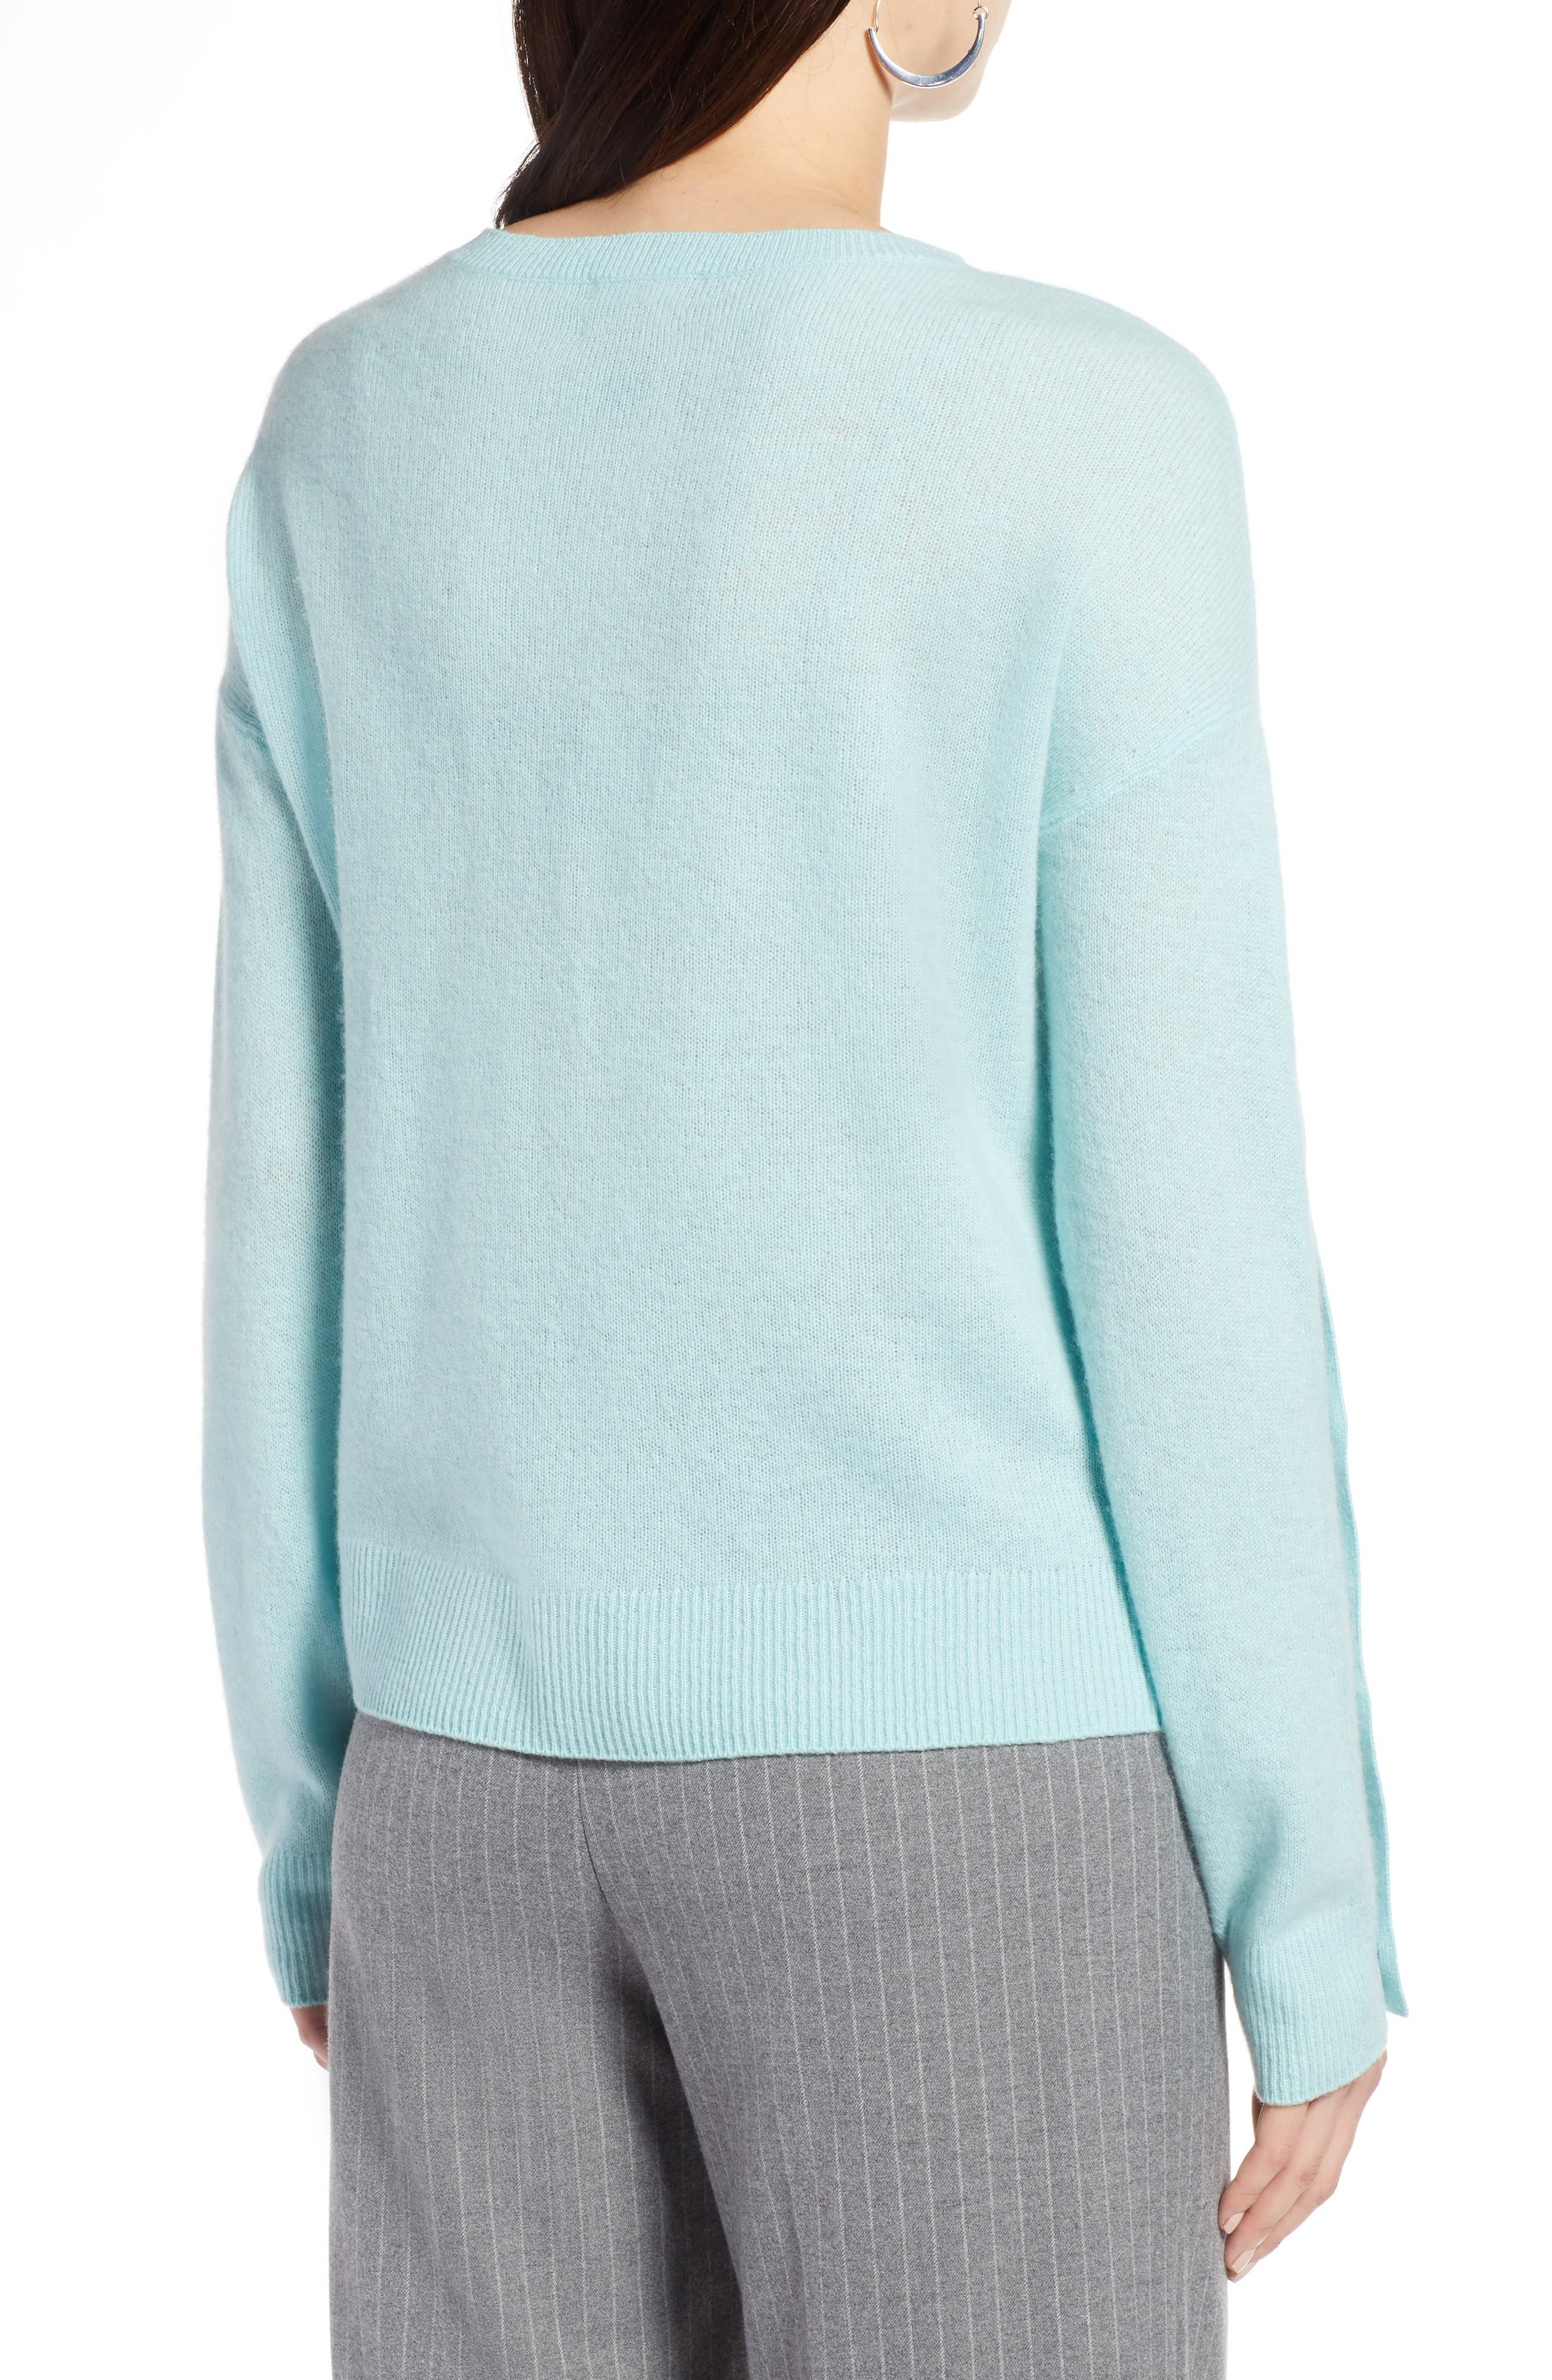 Cashmere Button Sleeve Sweater,                             Alternate thumbnail 2, color,                             450